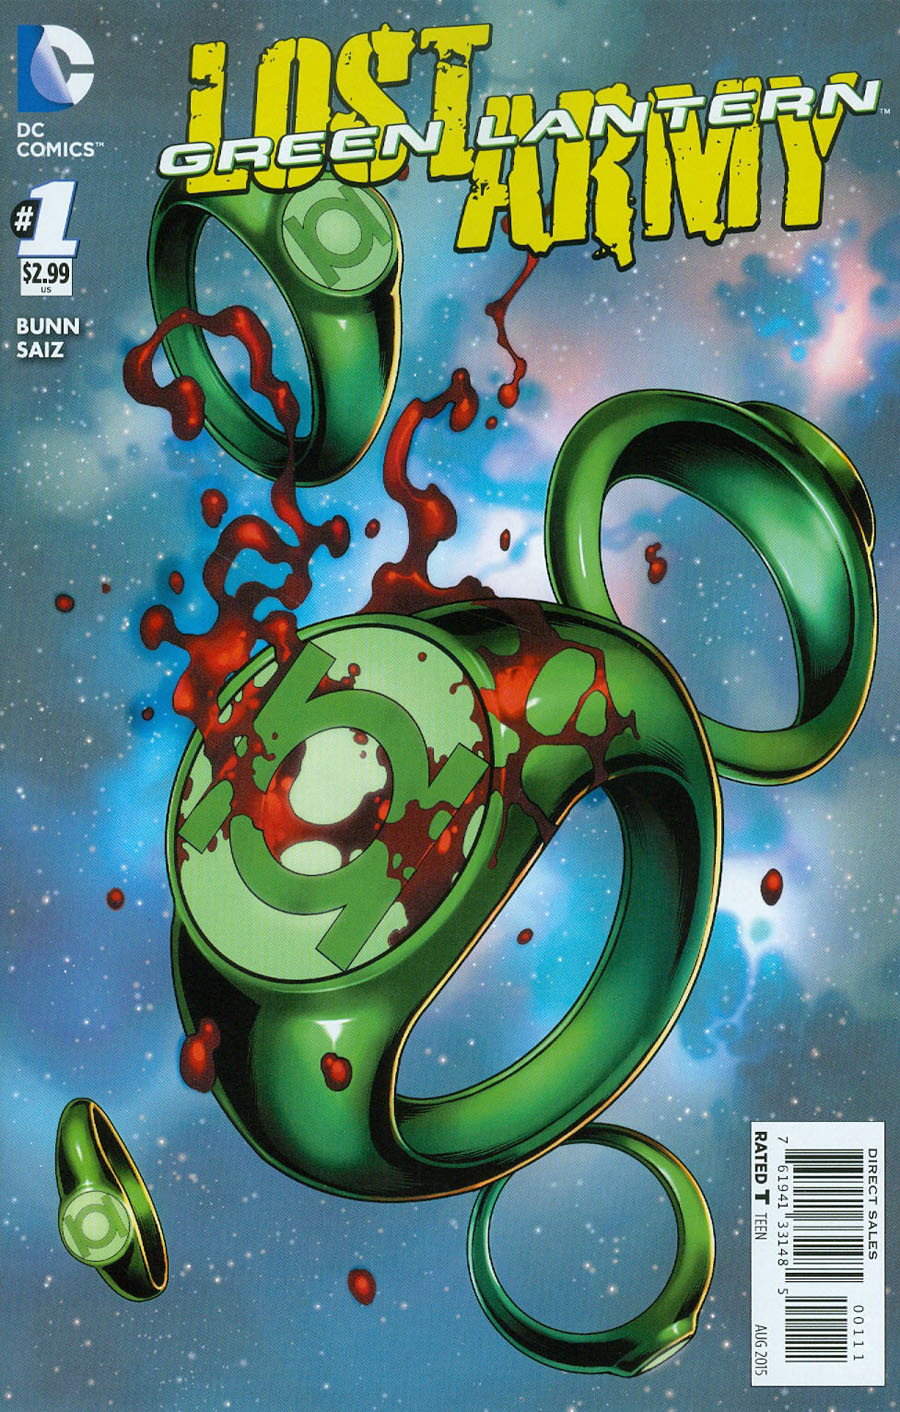 Green Lantern The Lost Army #1 Cover A Regular Jesus Saiz Cover